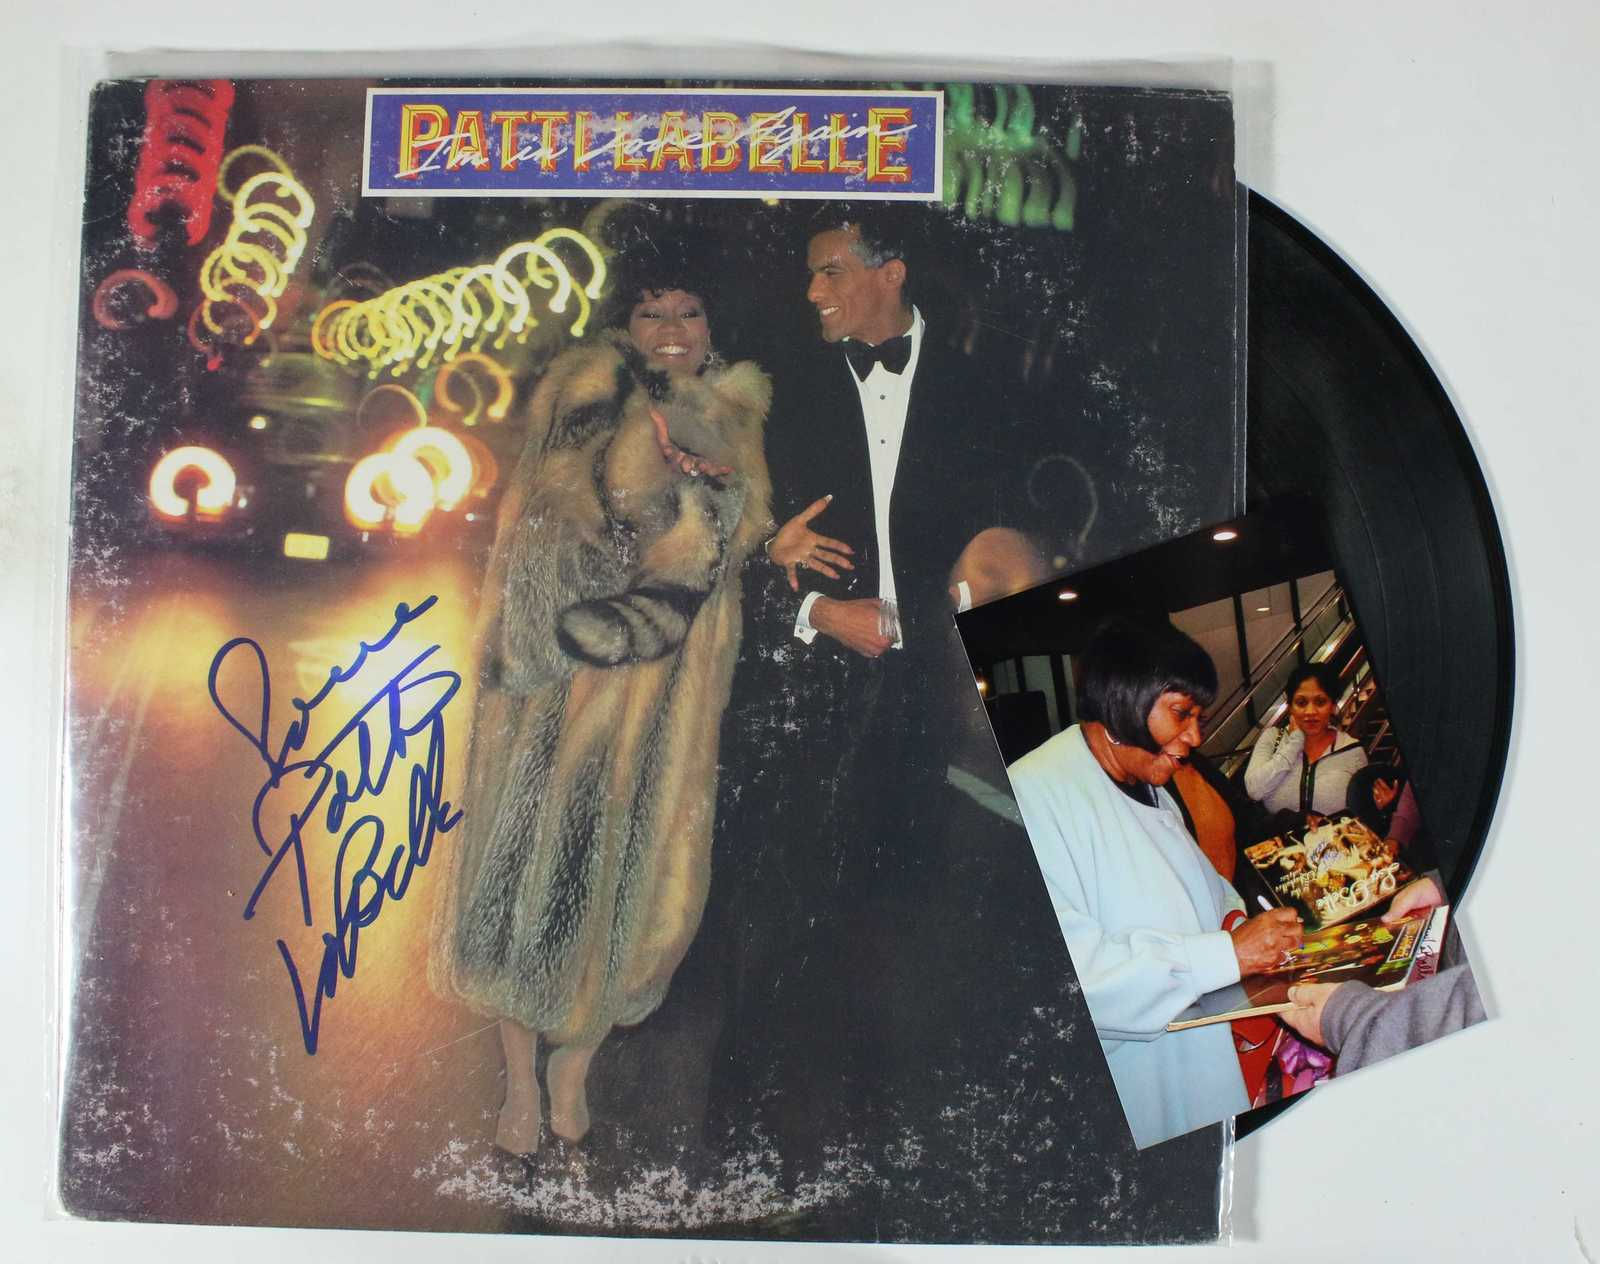 Primary image for Patti LaBelle Signed Autographed Record Album w/ Proof Photo